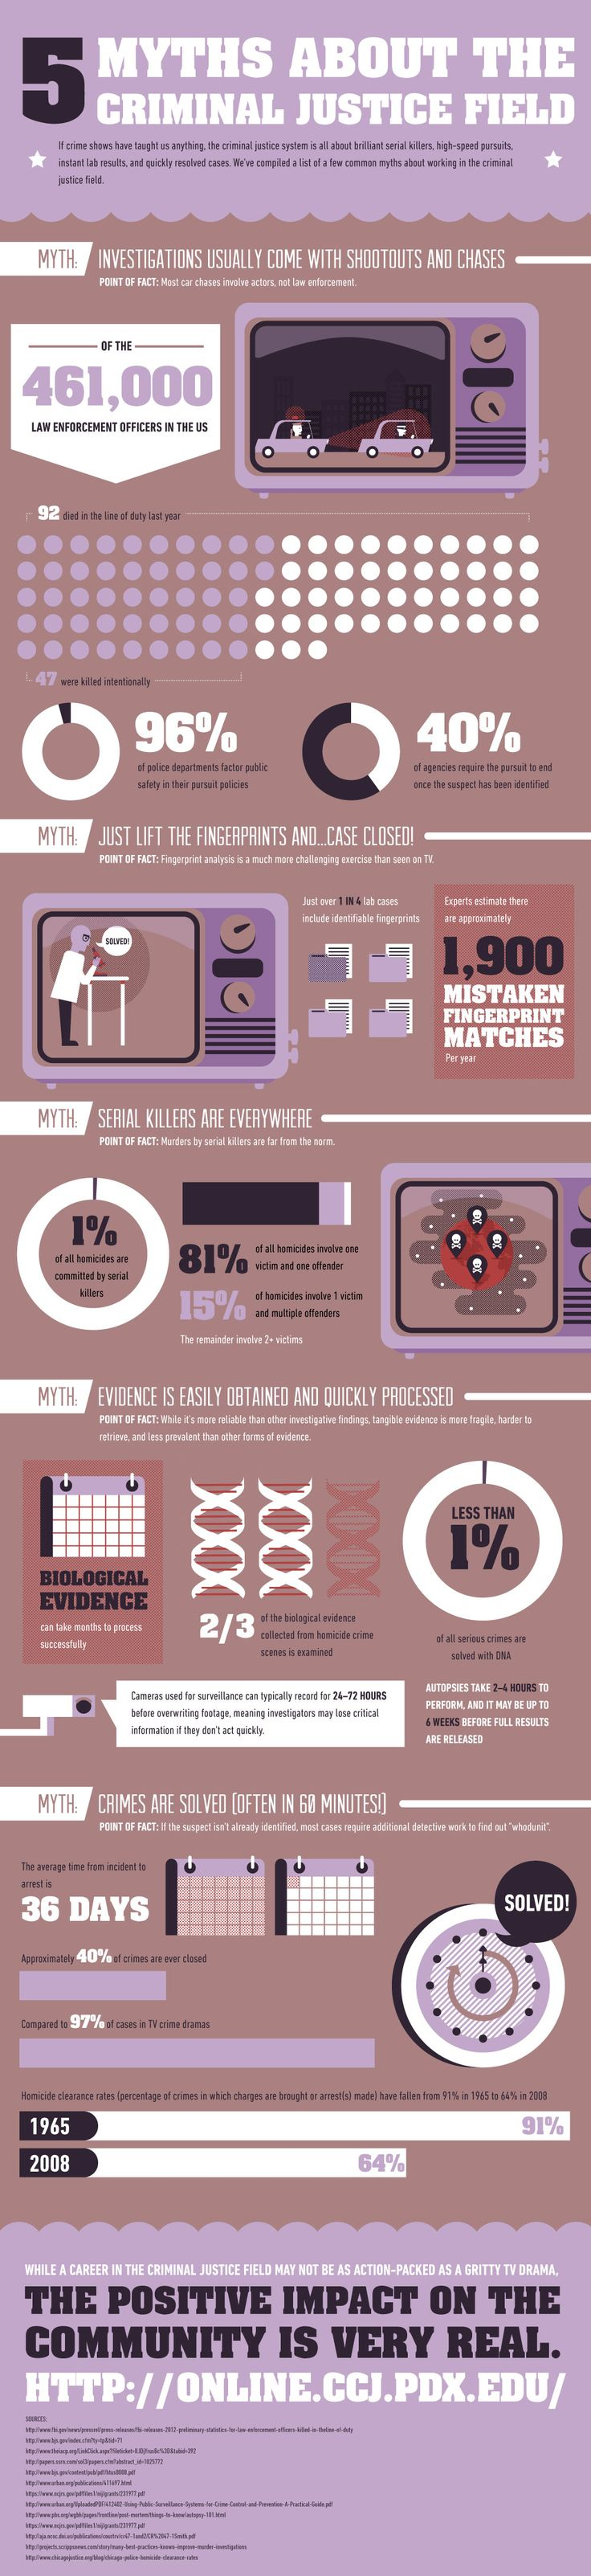 5 Myths About The Criminal Justice Field #Infographic #Crime